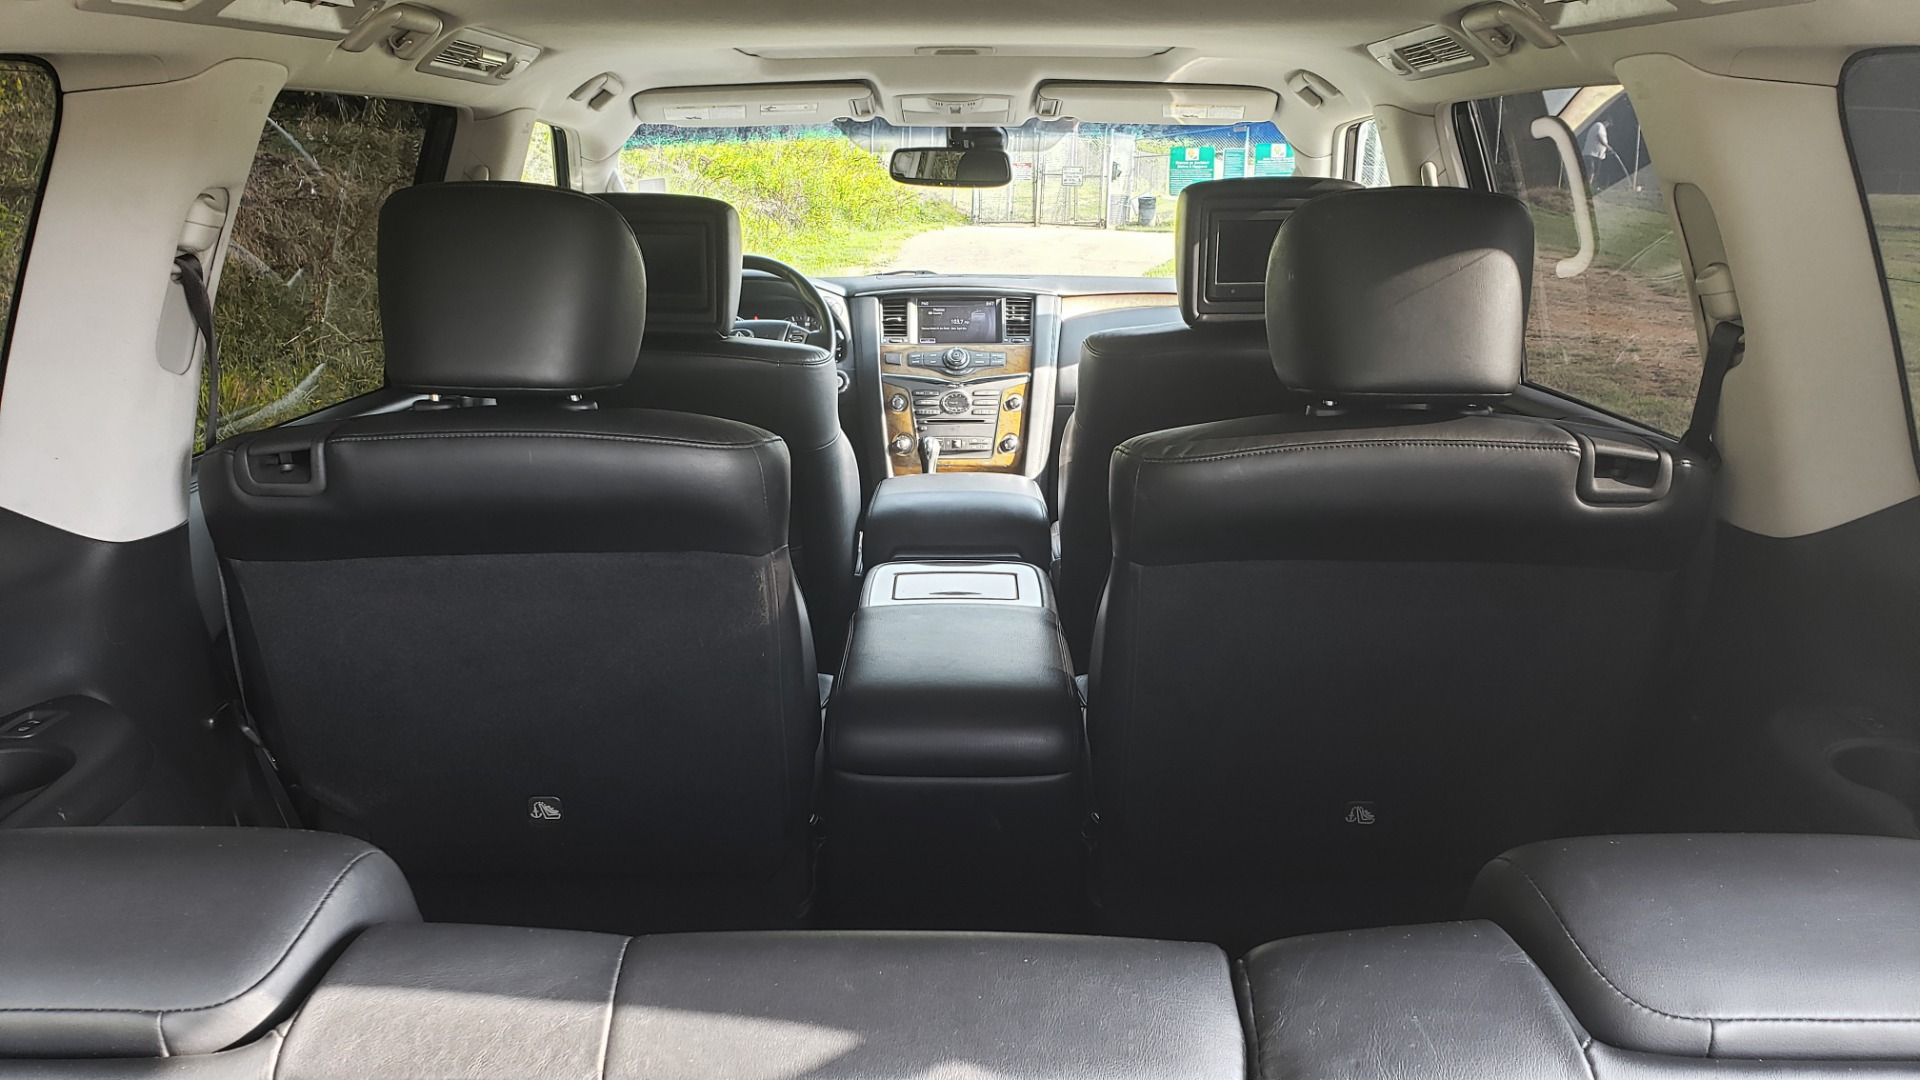 Used 2013 INFINITI QX56 THEATER PKG / NAV / SUNROOF / HEATED SEATS / REARVIEW for sale Sold at Formula Imports in Charlotte NC 28227 19